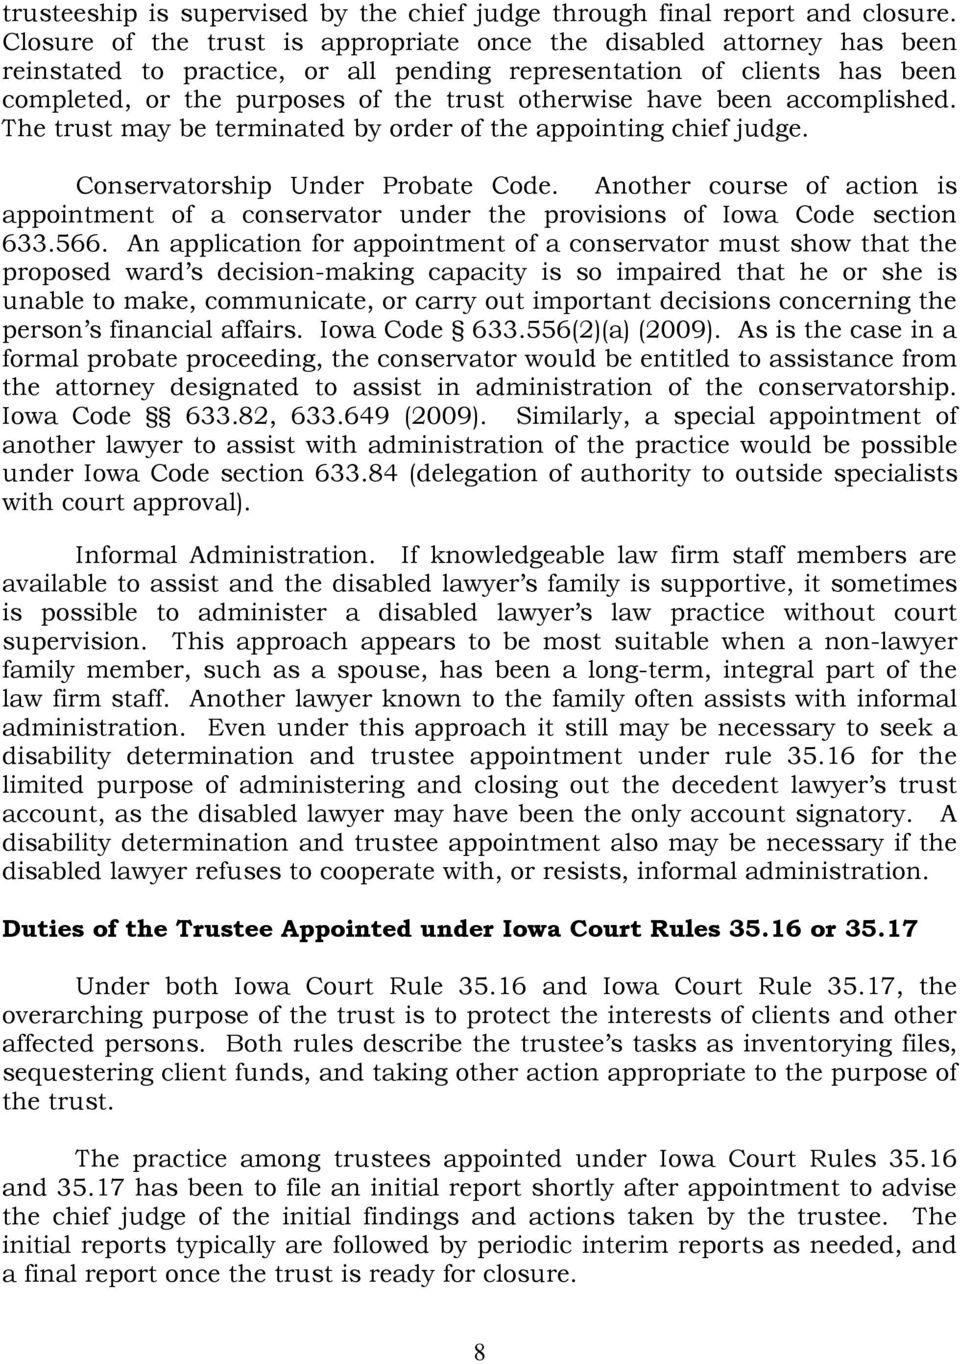 have been accomplished. The trust may be terminated by order of the appointing chief judge. Conservatorship Under Probate Code.